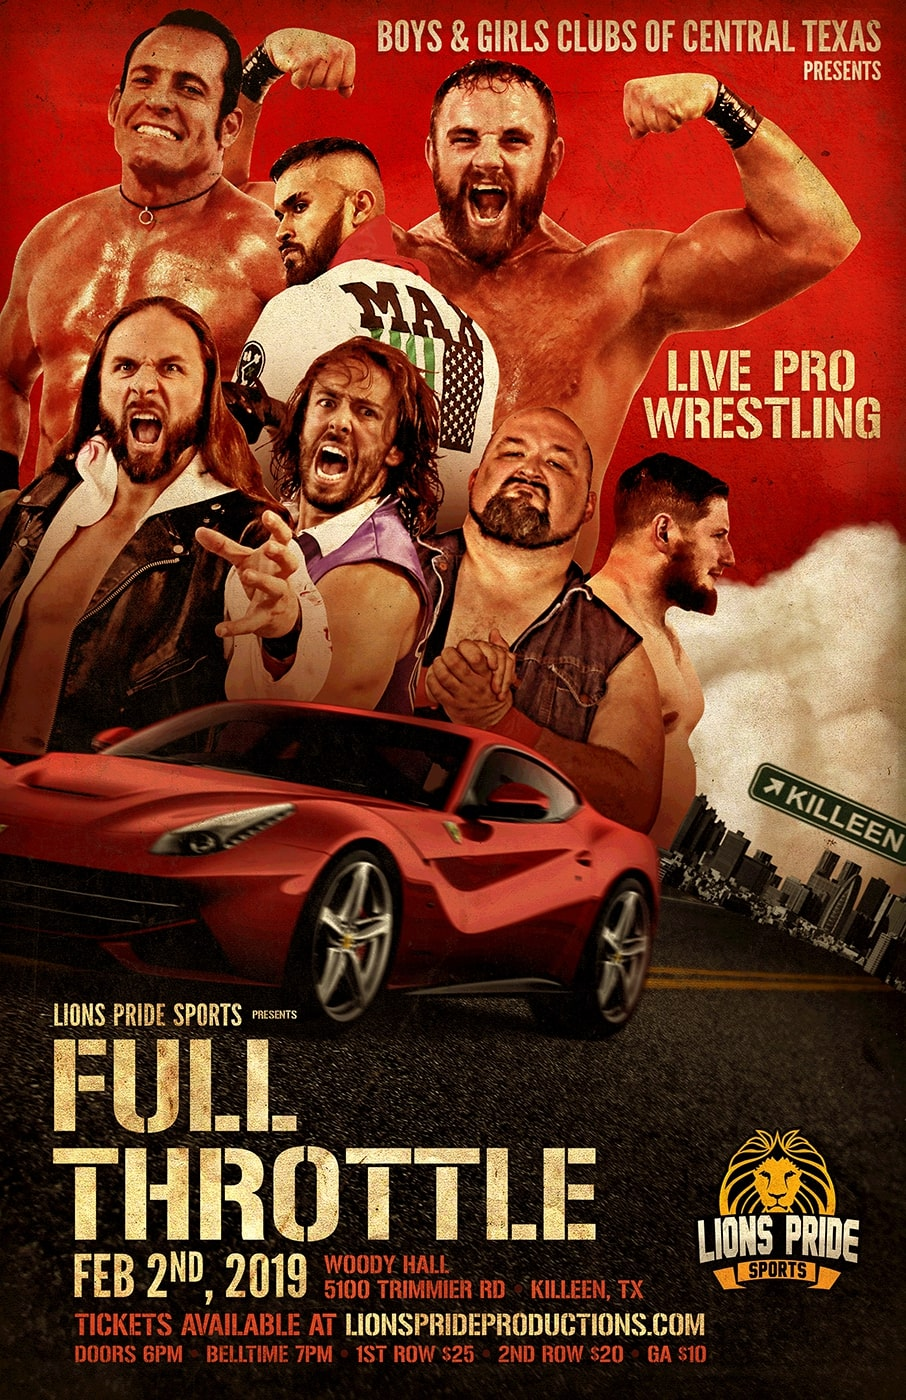 BGCTX Presents FULL THROTTLE - A Live Pro Wrestling Event on Februrary 2, 2019